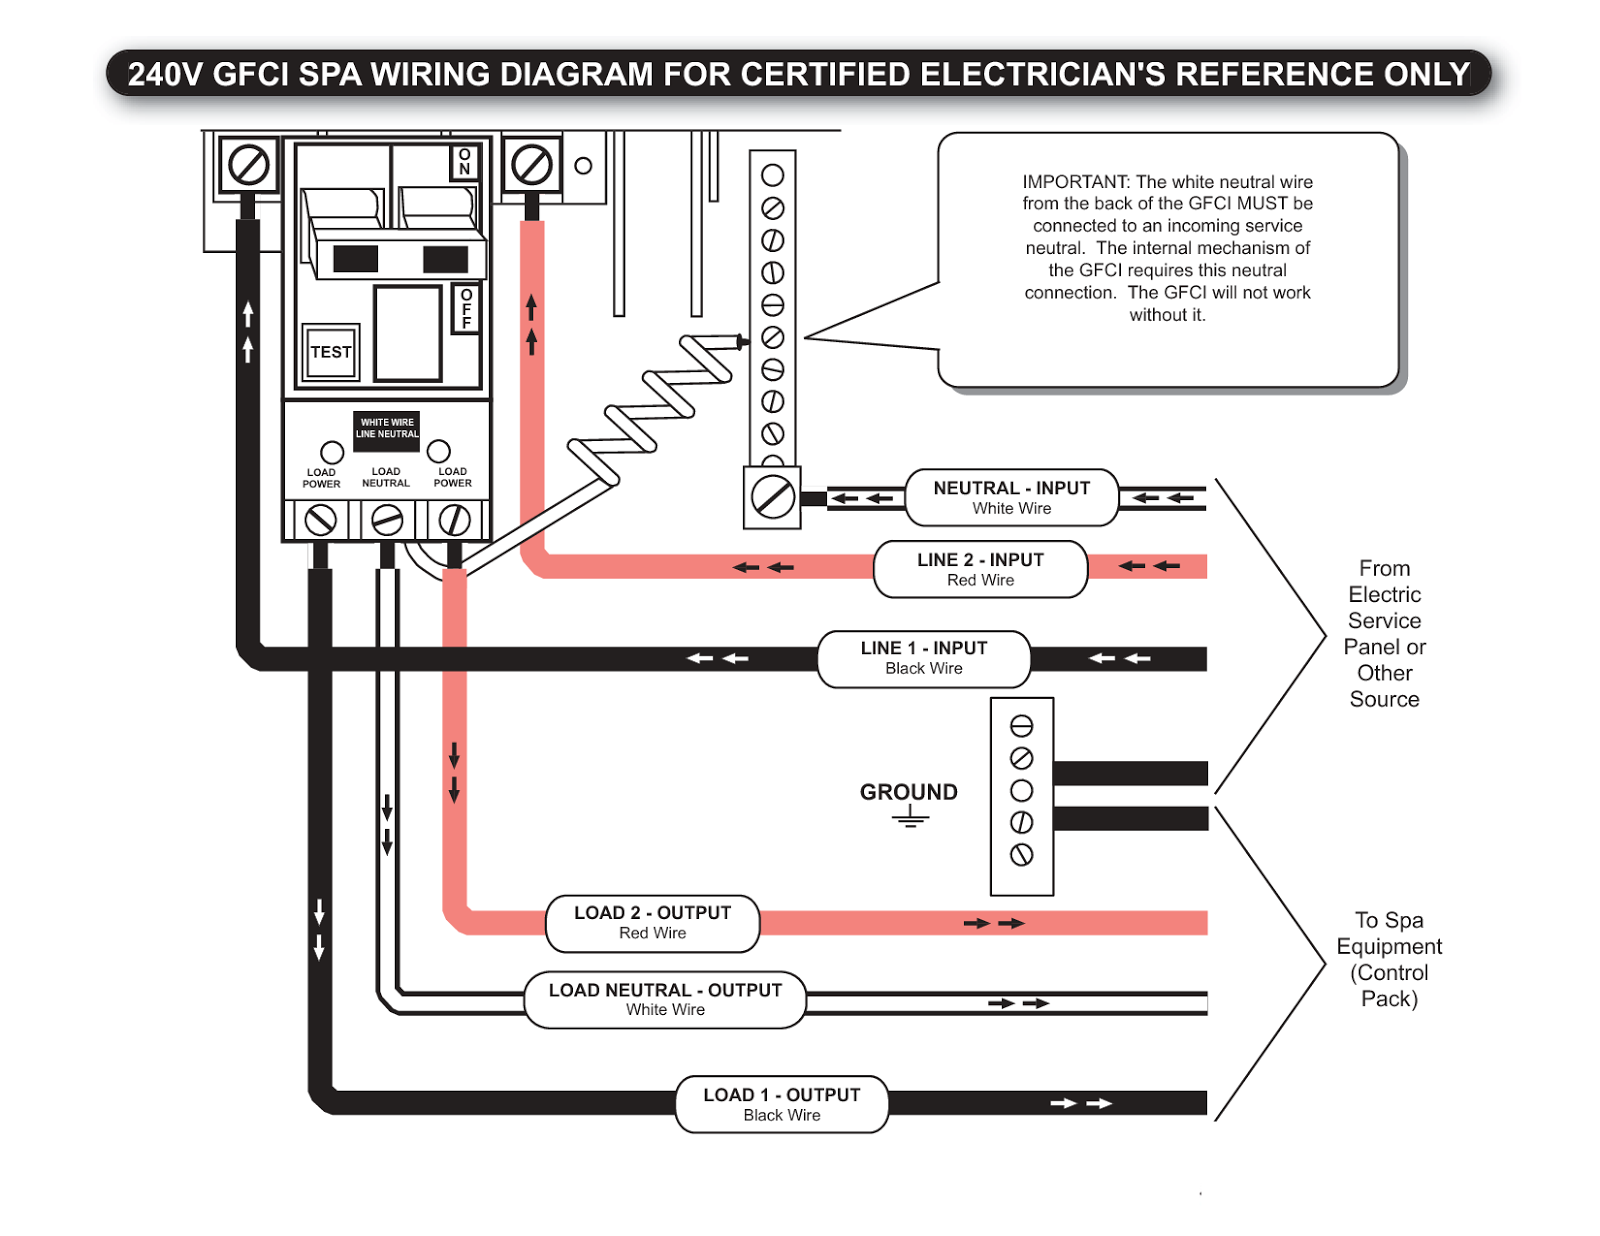 Electric Work Gfci Wiring Diagram 240 Volt